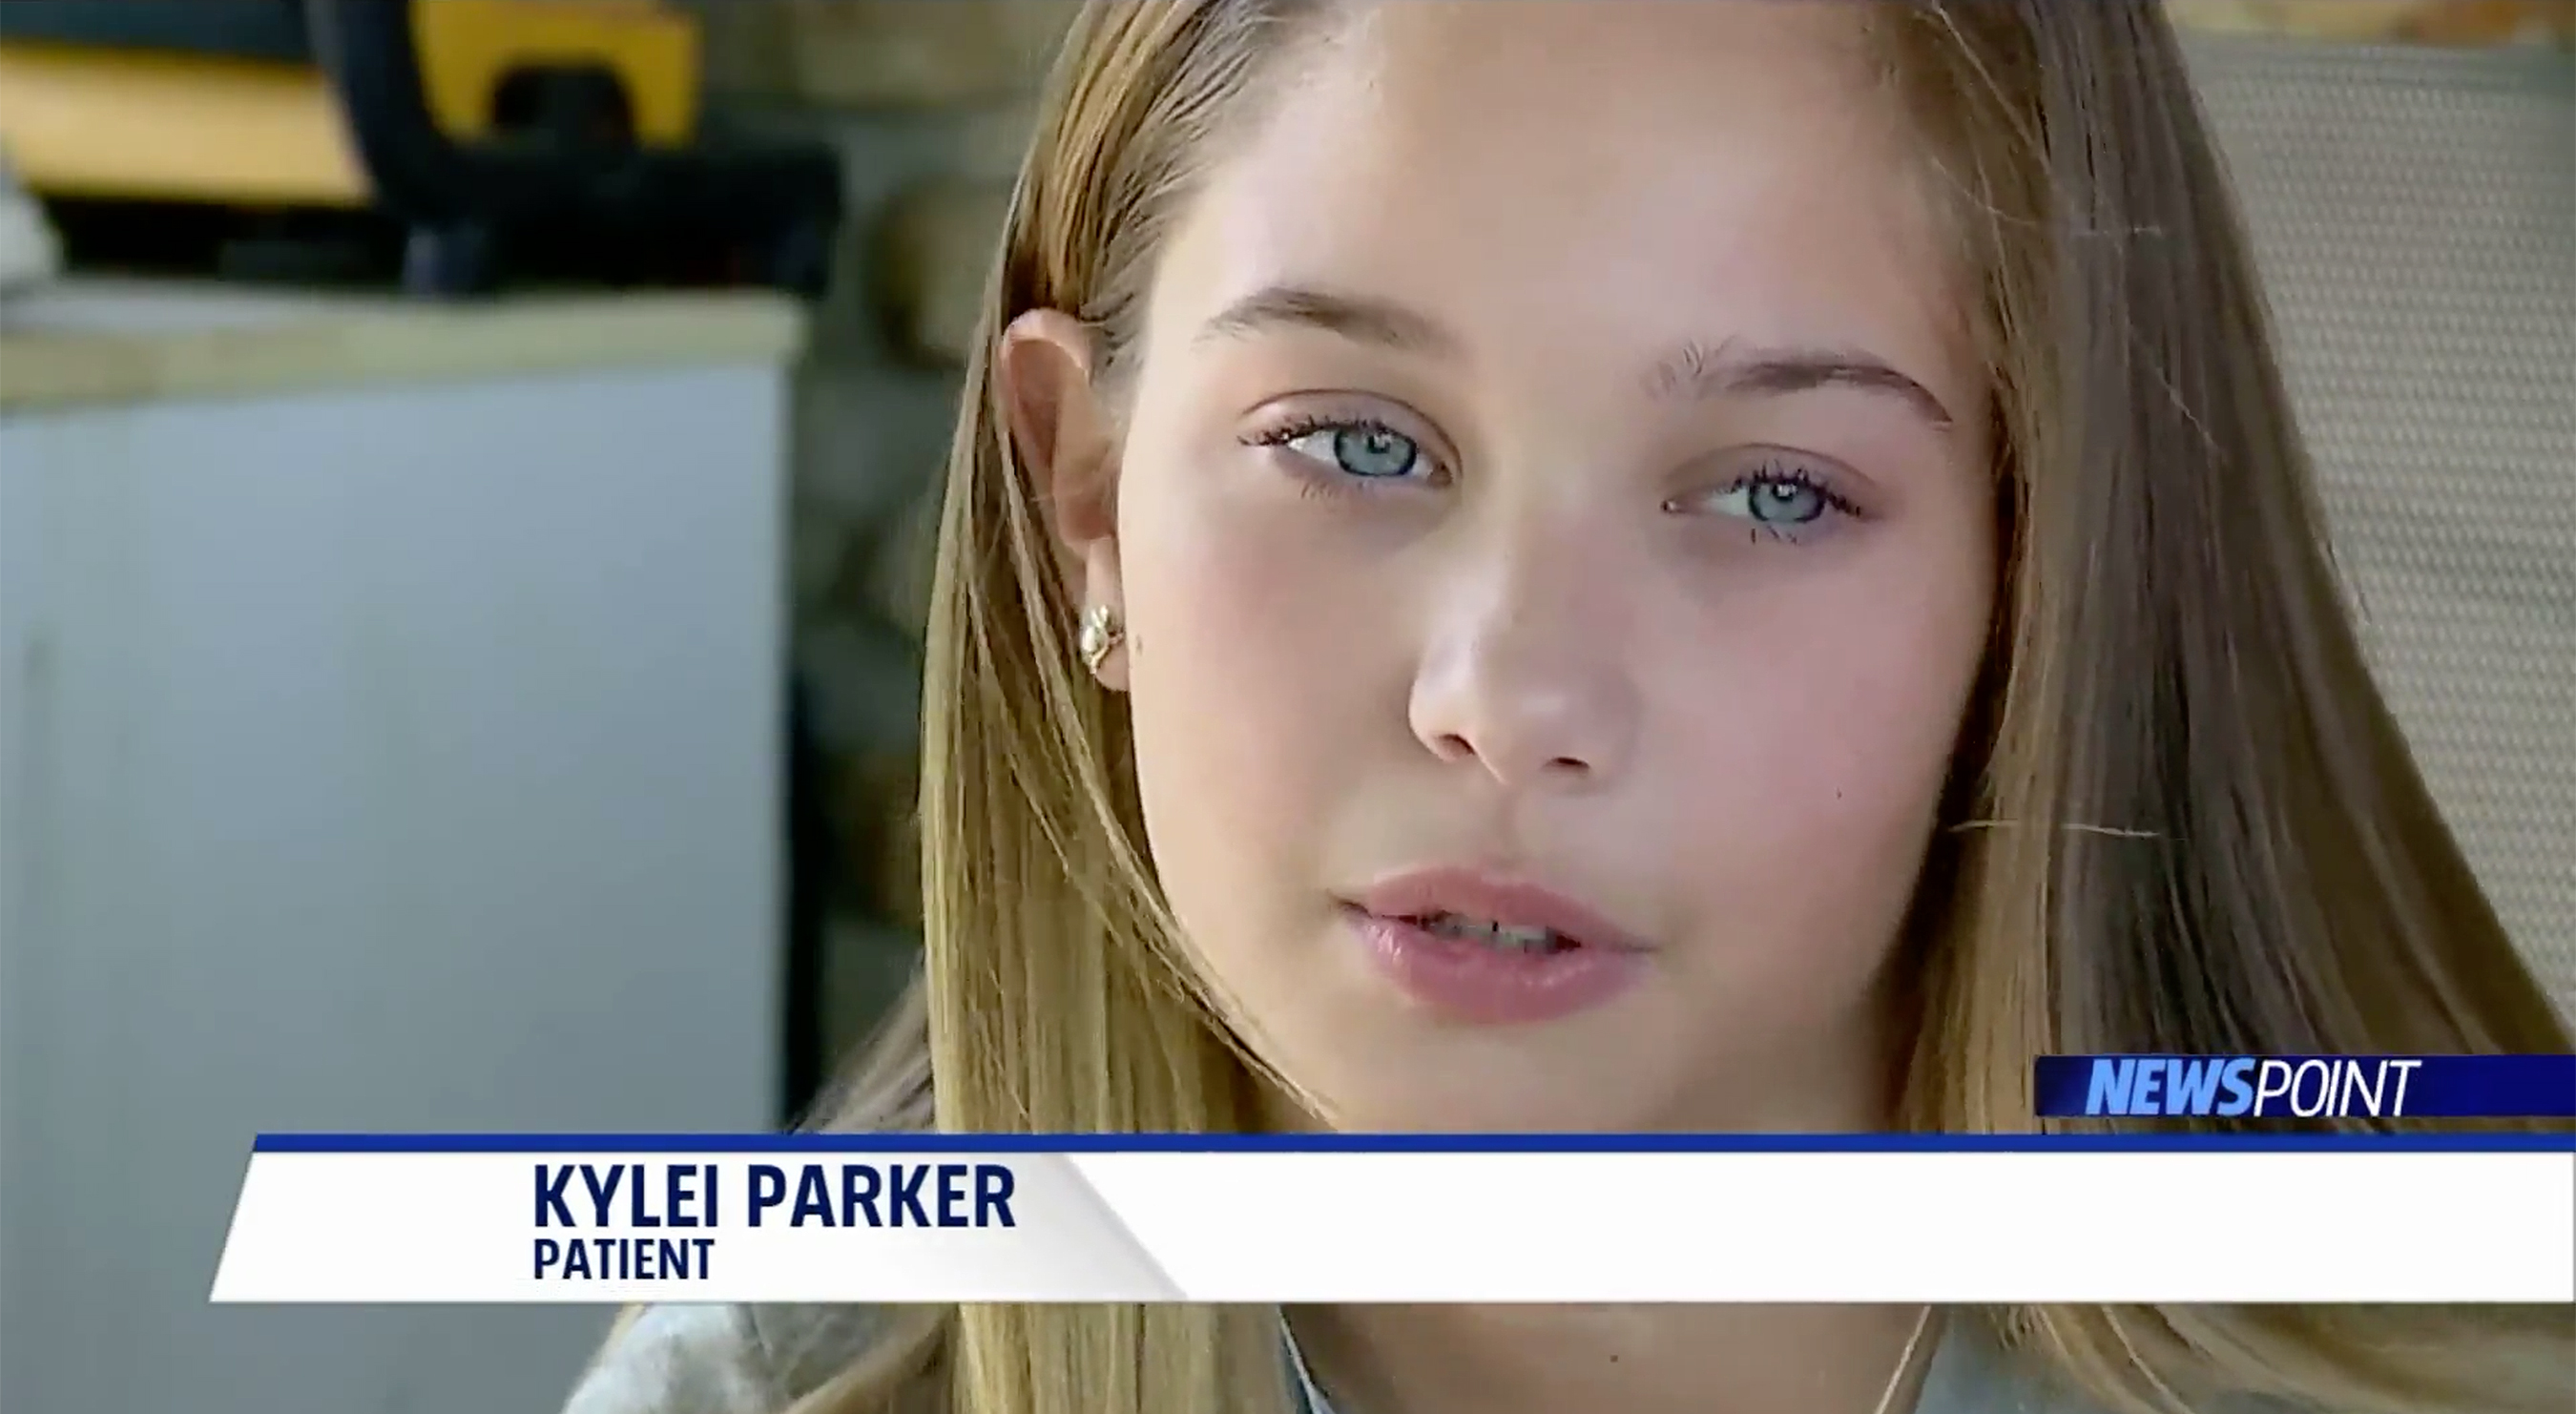 12-Year-Old Girl Gets Life-Threatening Flesh-Eating Disease After Swimming at a Florida Beach